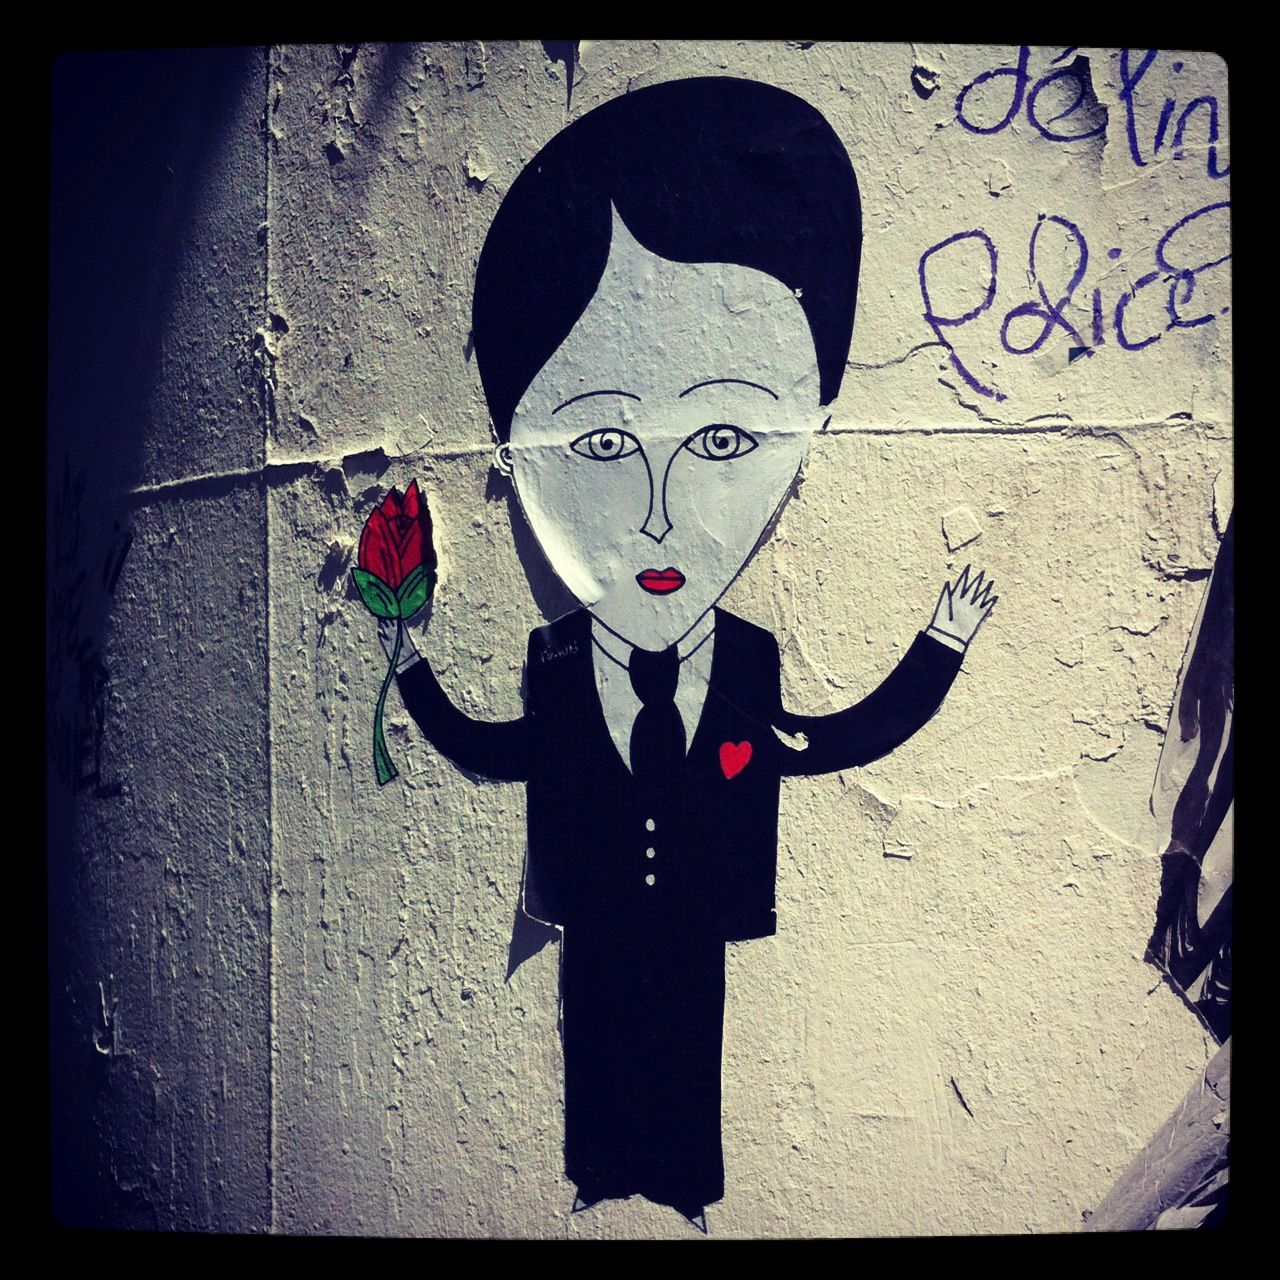 Fred Le Chevalier - Centre Georges Pompidou #StreetArt #Collage